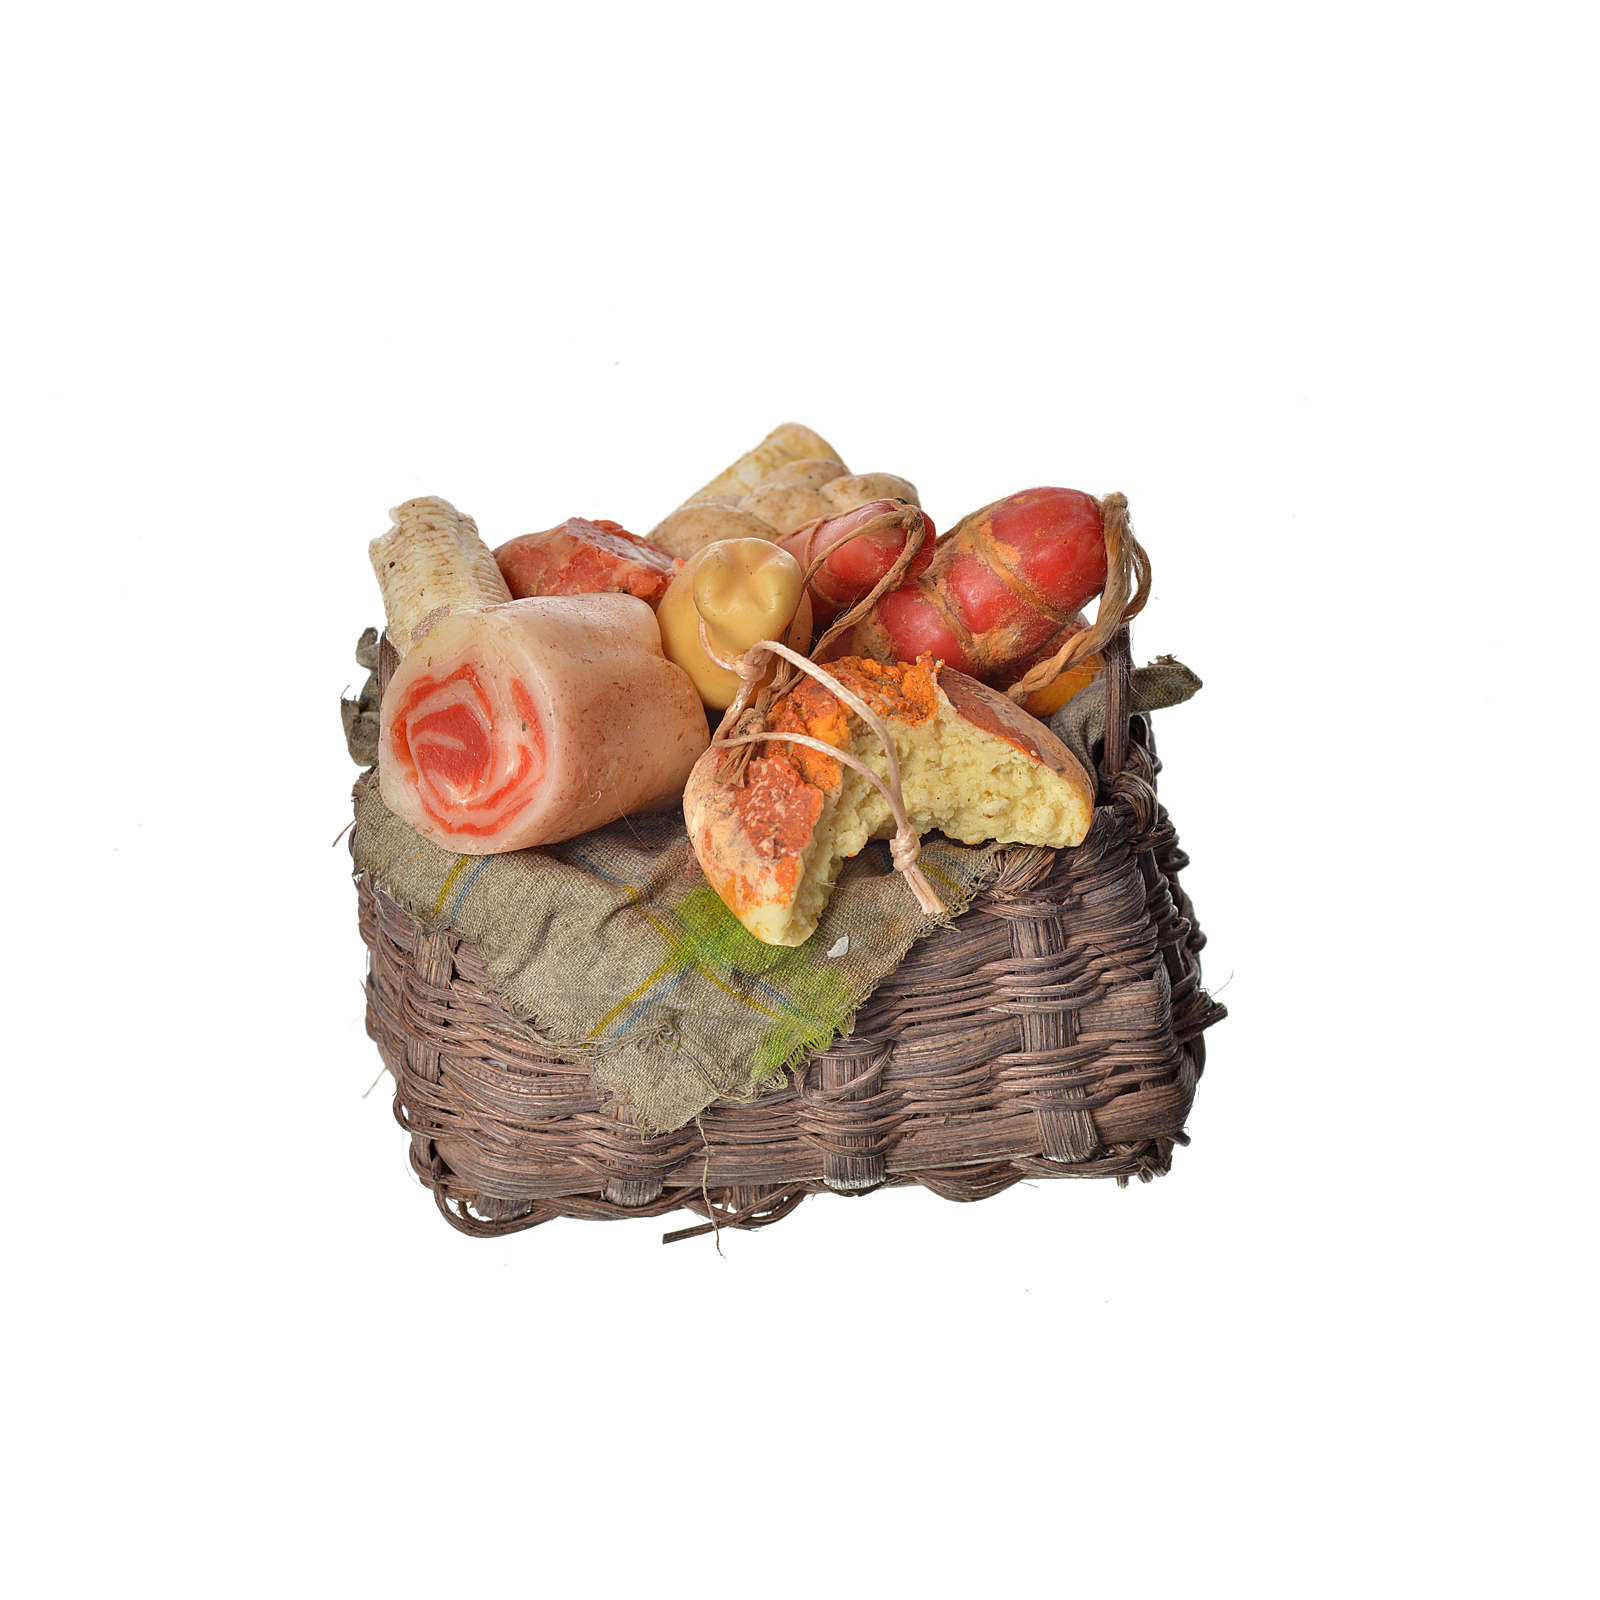 Nativity accessory, cold meat basket in wax, 10x7x8cm 4